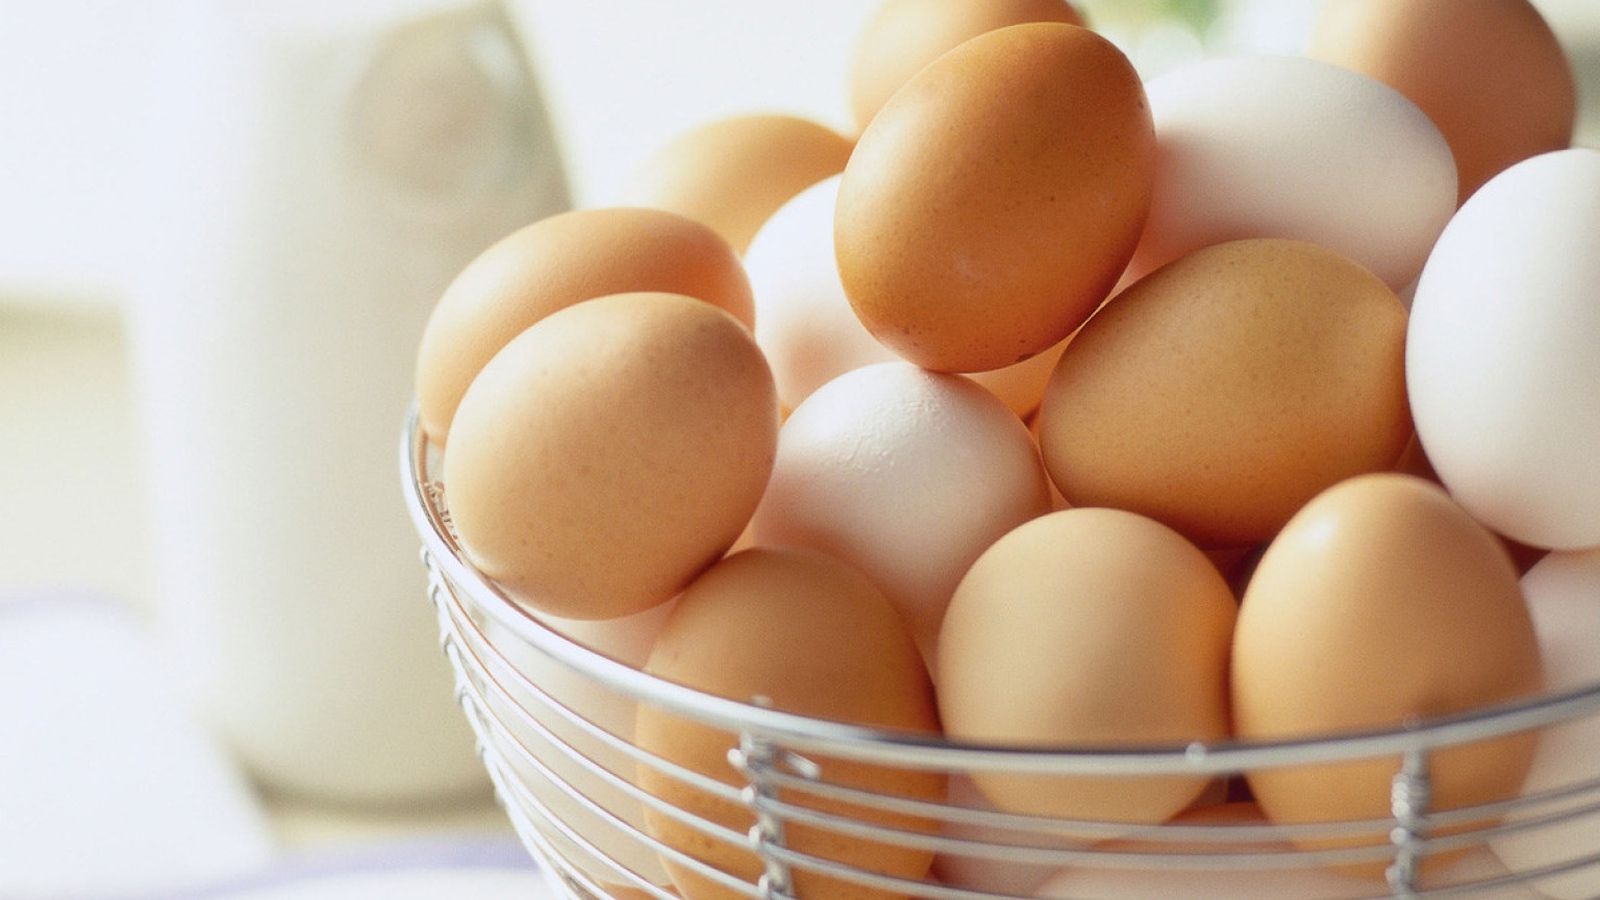 everydayshouldbesaturday.com - I ATE THREE EGGS EVERY SINGLE MORNING FOR A WEEK - HERE'S WHAT HAPPENED